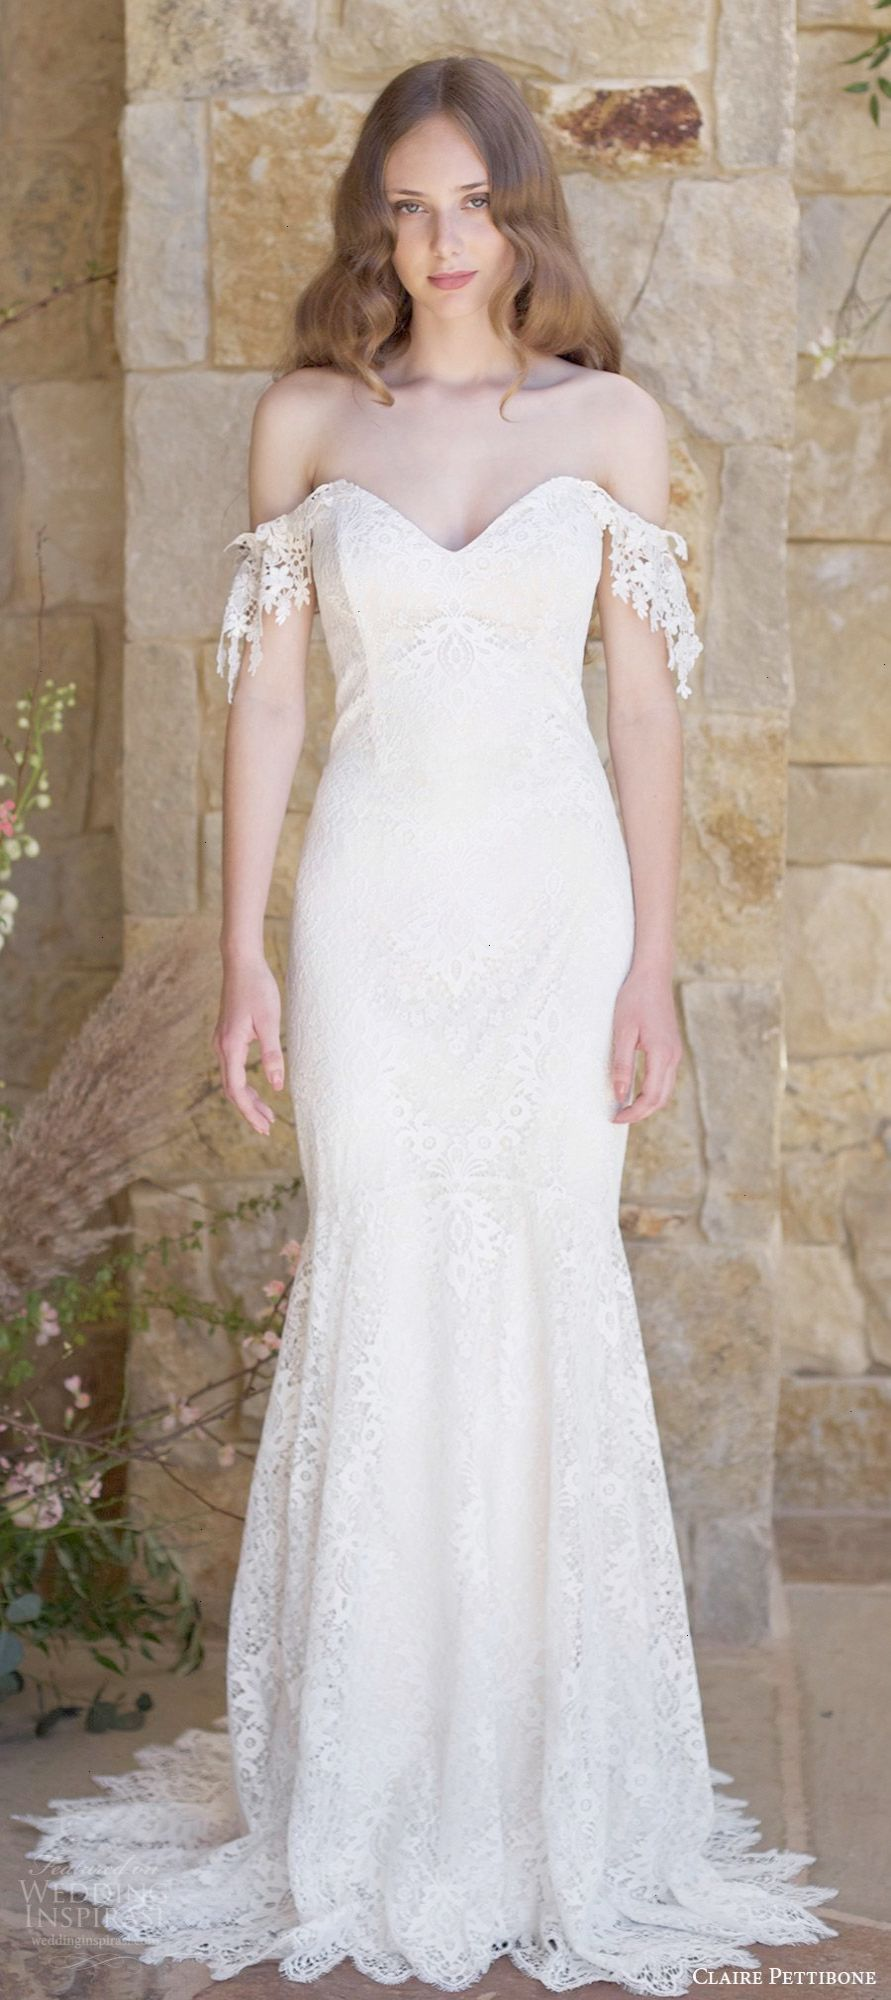 Claire pettibone spring bridal off shoulder sweetheart lace